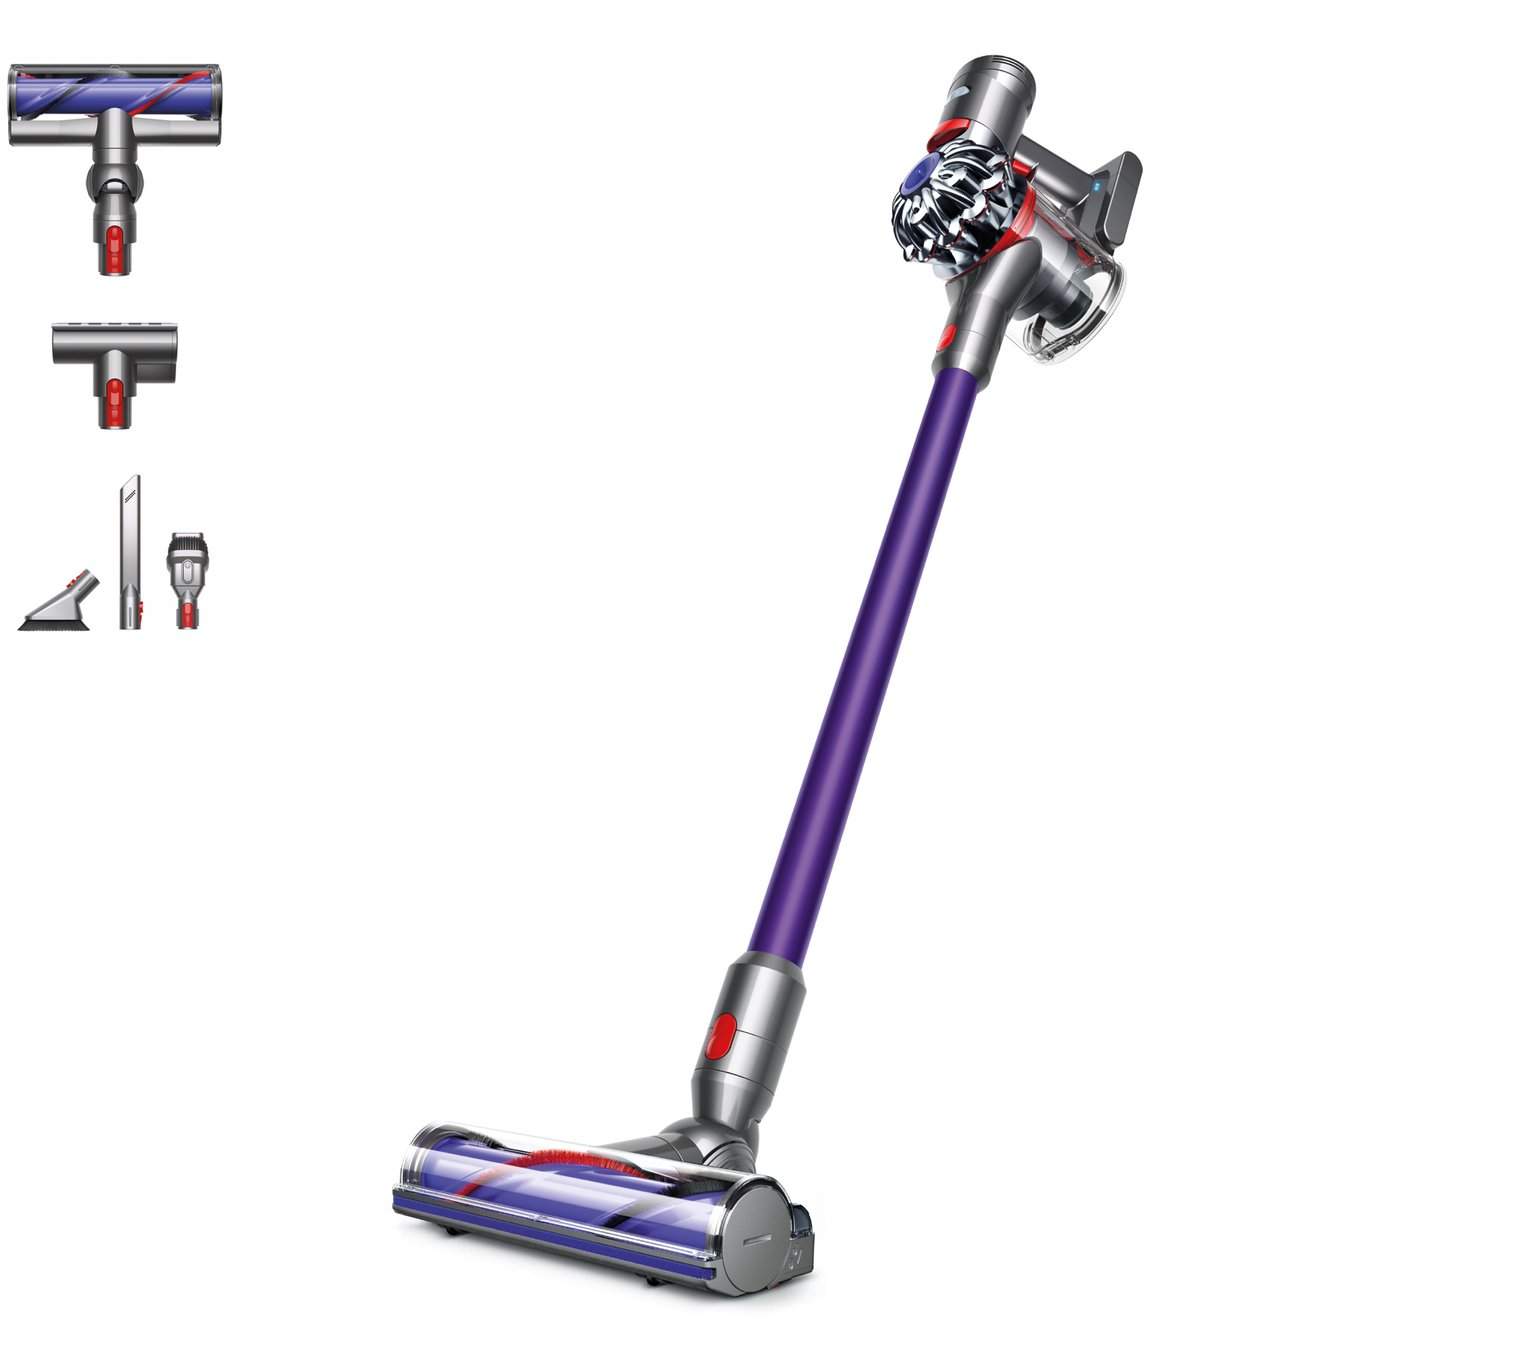 Dyson V7 Animal Cordless Vacuum Cleaner Review